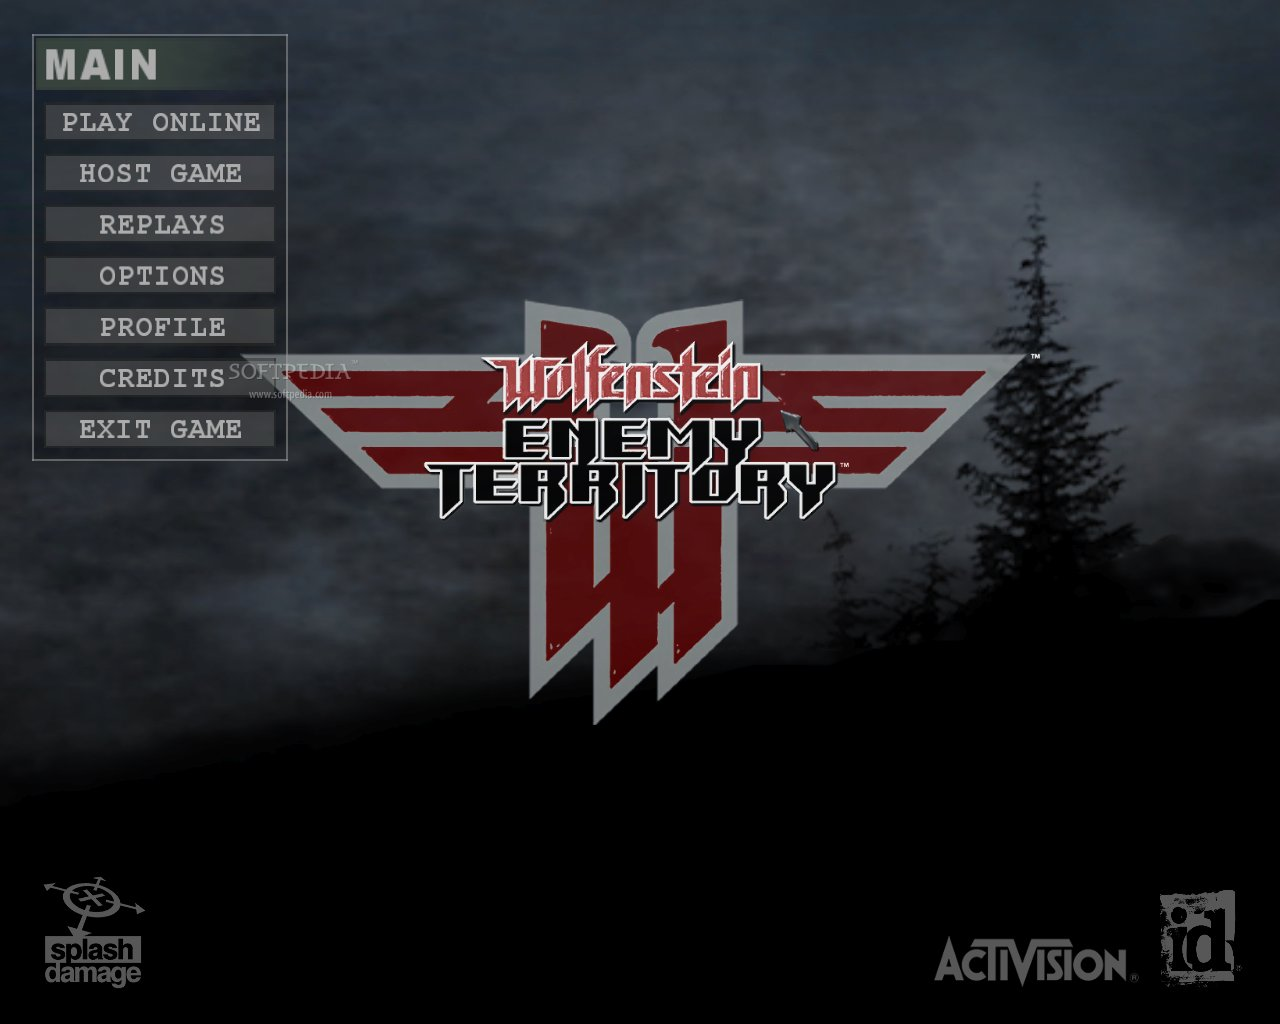 Return To Castle Wolfenstein Enemy Territory FREE FULL GAME 1 a few argos pages from early 80s...wow   PassionFord